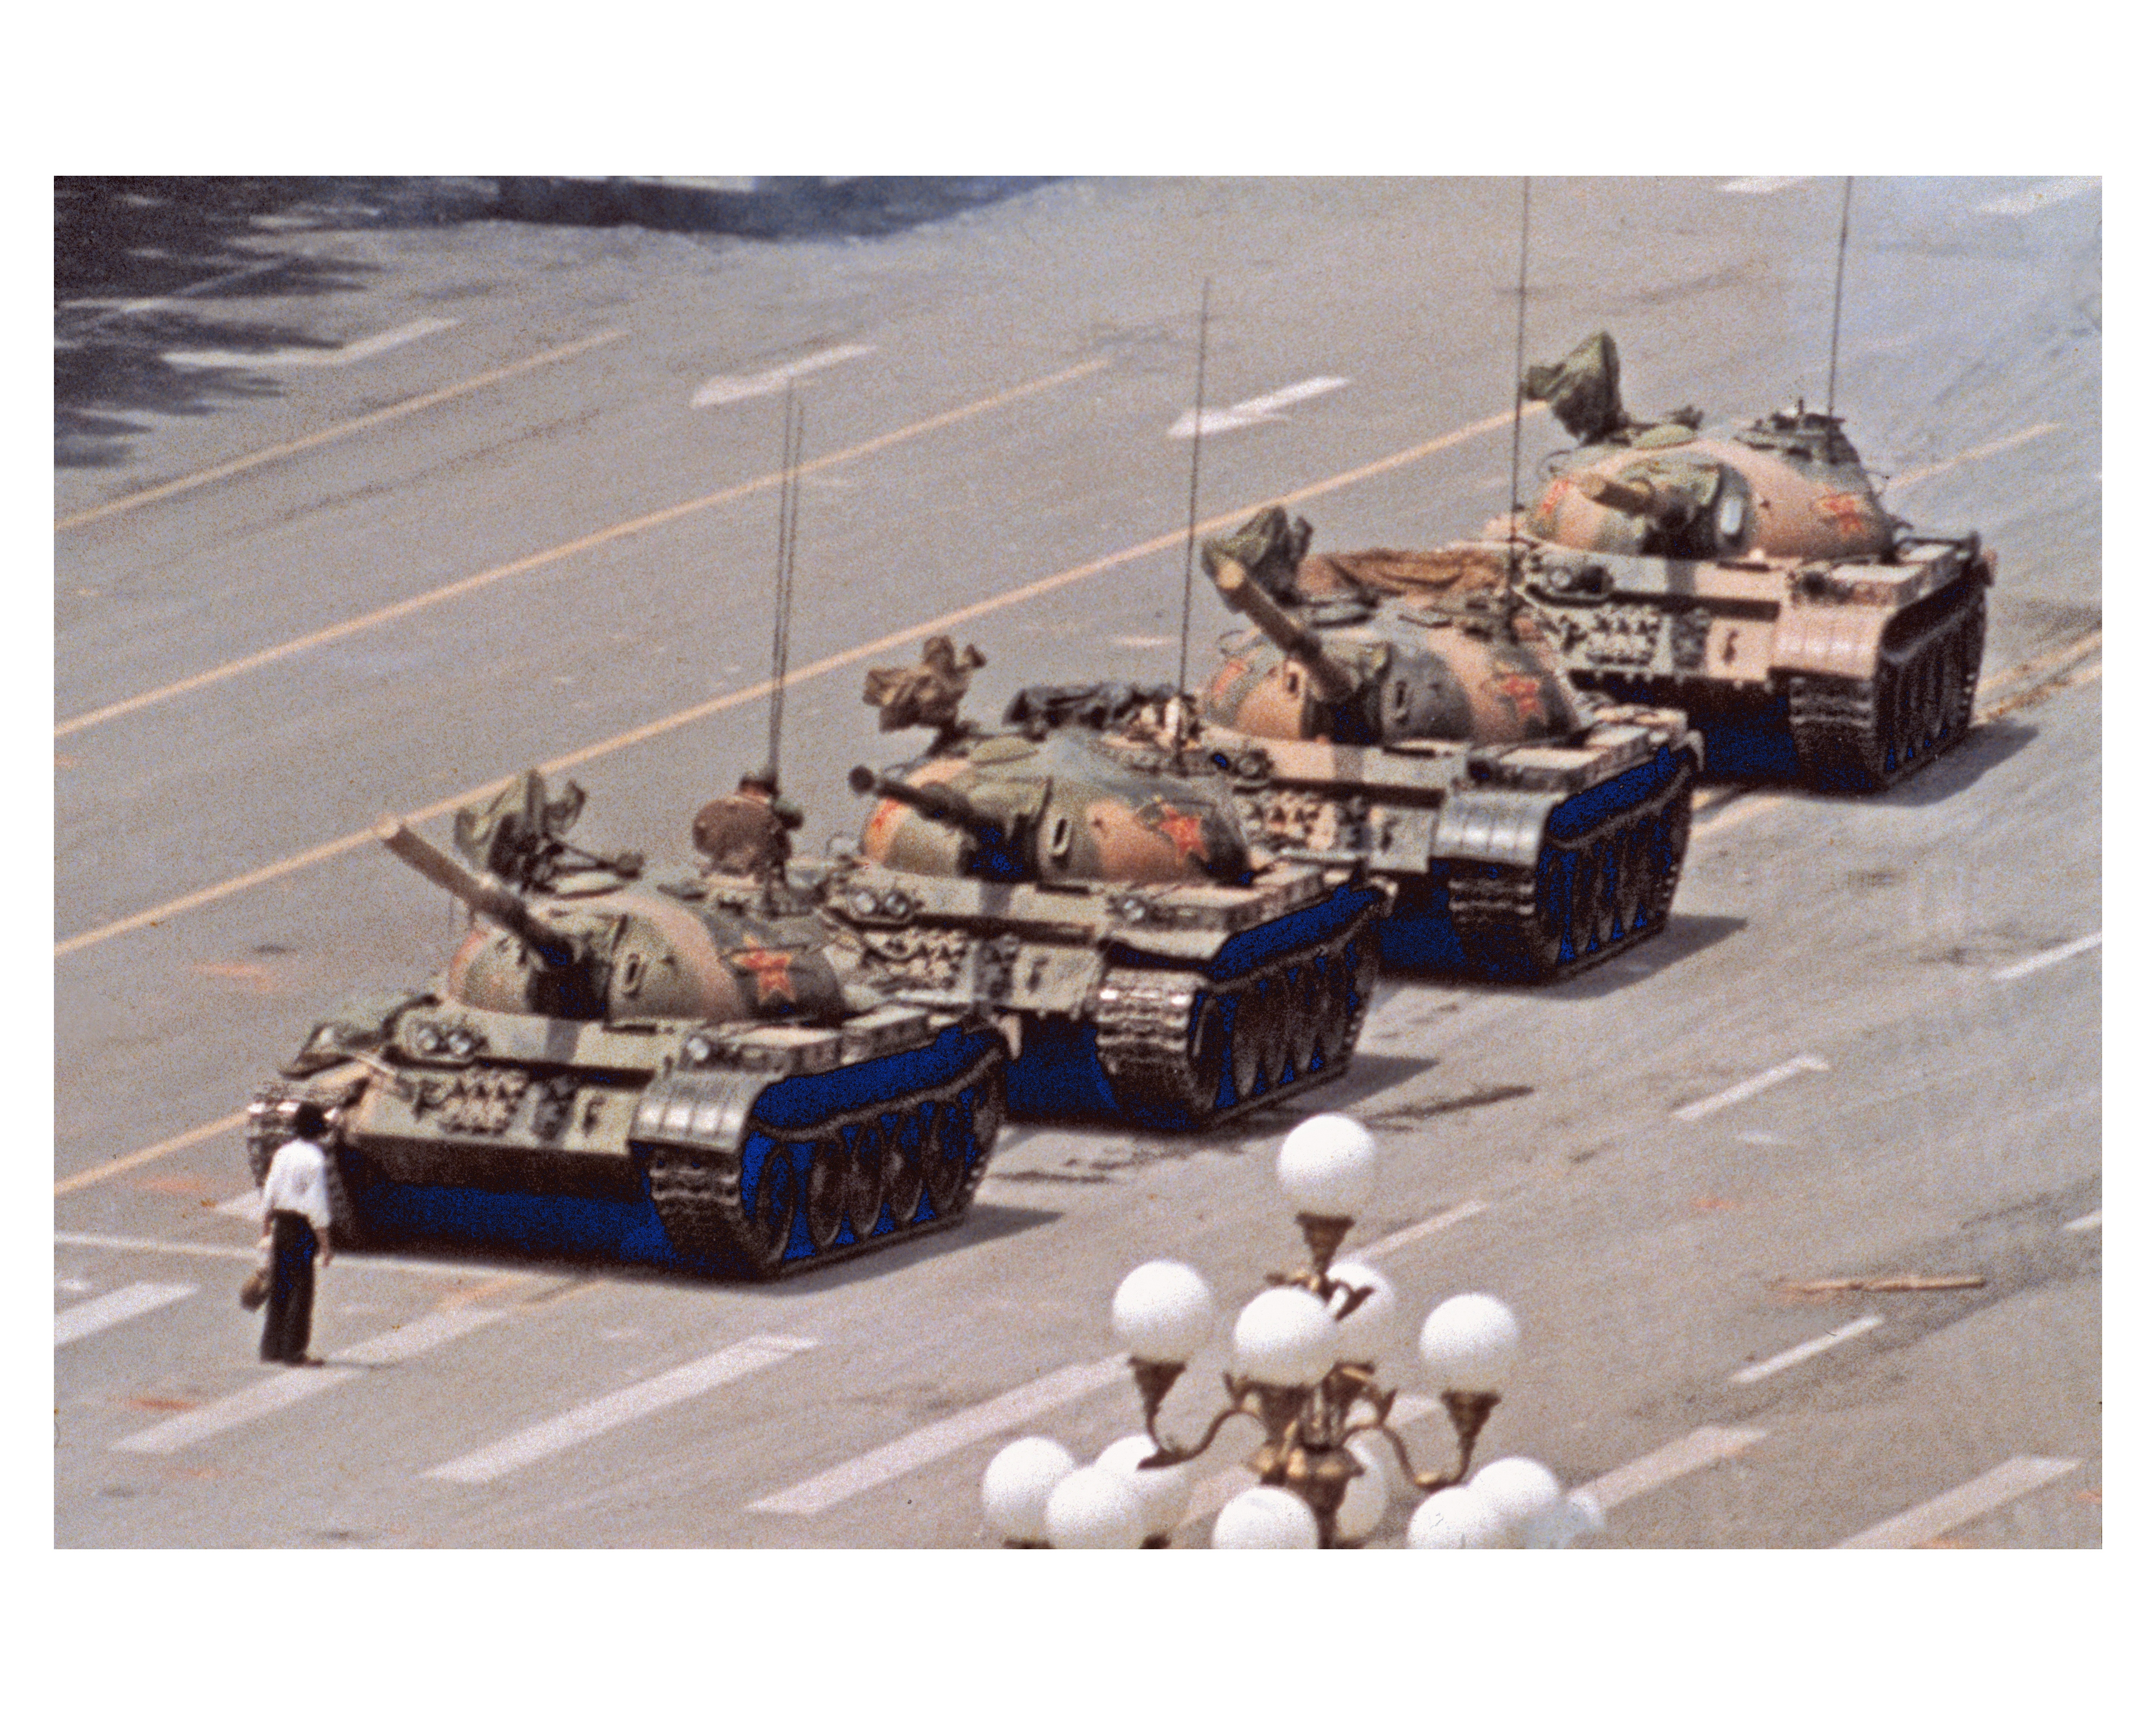 Jeff-Widener, tiananmen-square-massacre, tiananmen-square, tank-man, photography, photojournalist, Bejing, China